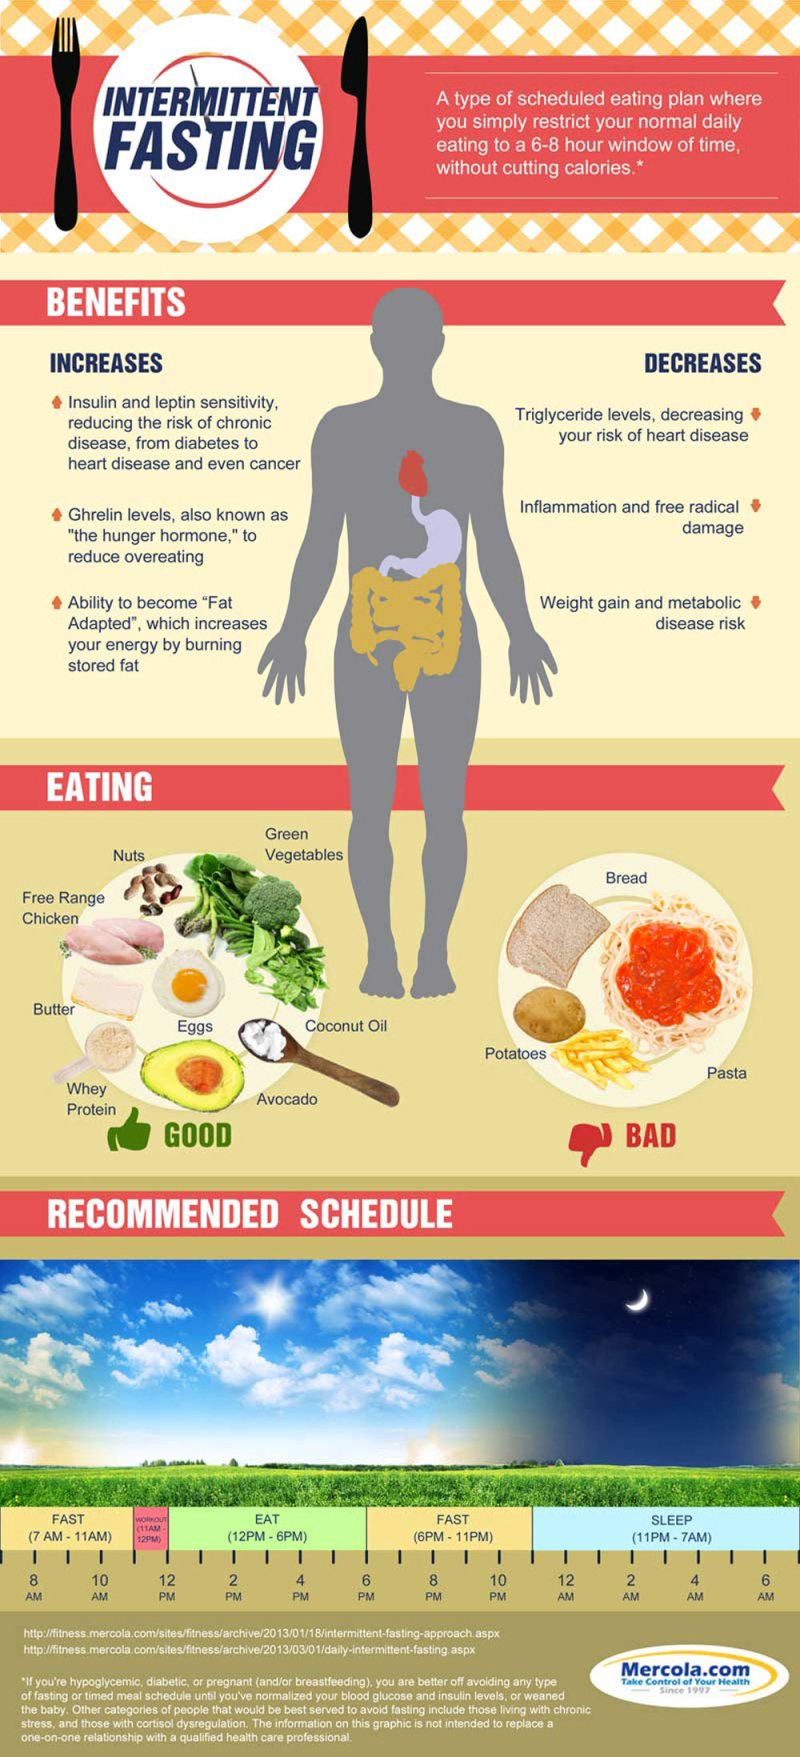 intermittent-fasting-highres